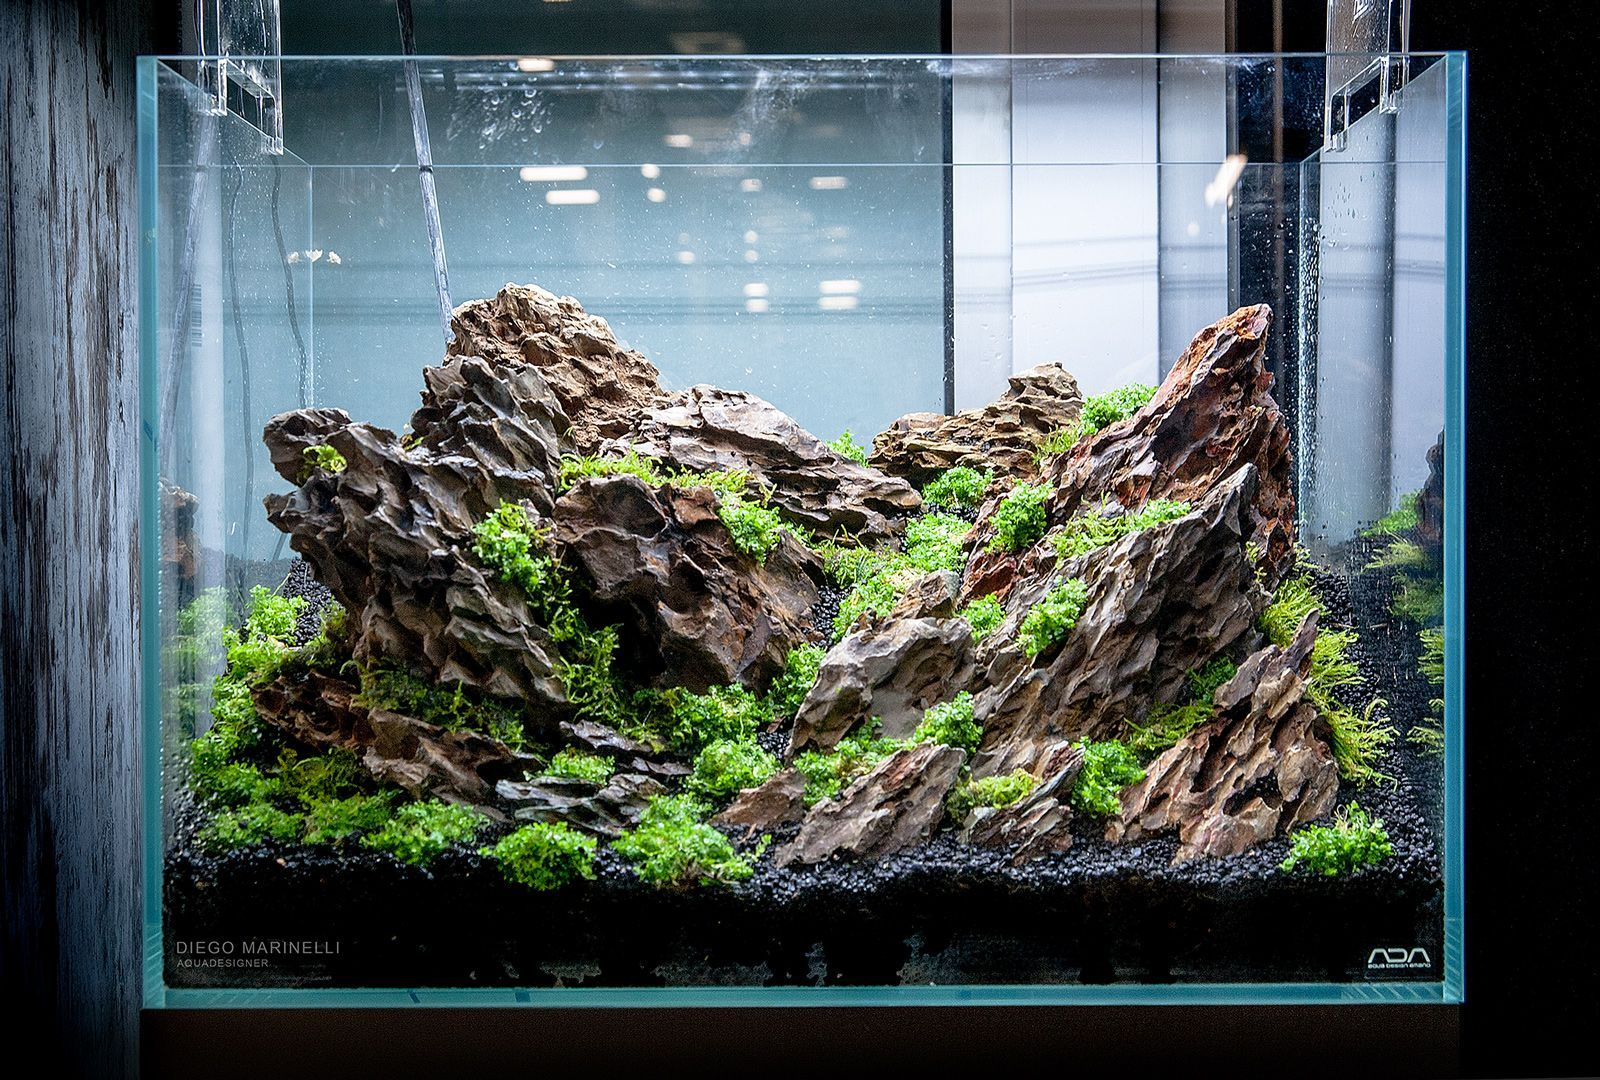 Diy Aquascape Lighting Ideas Aquarium